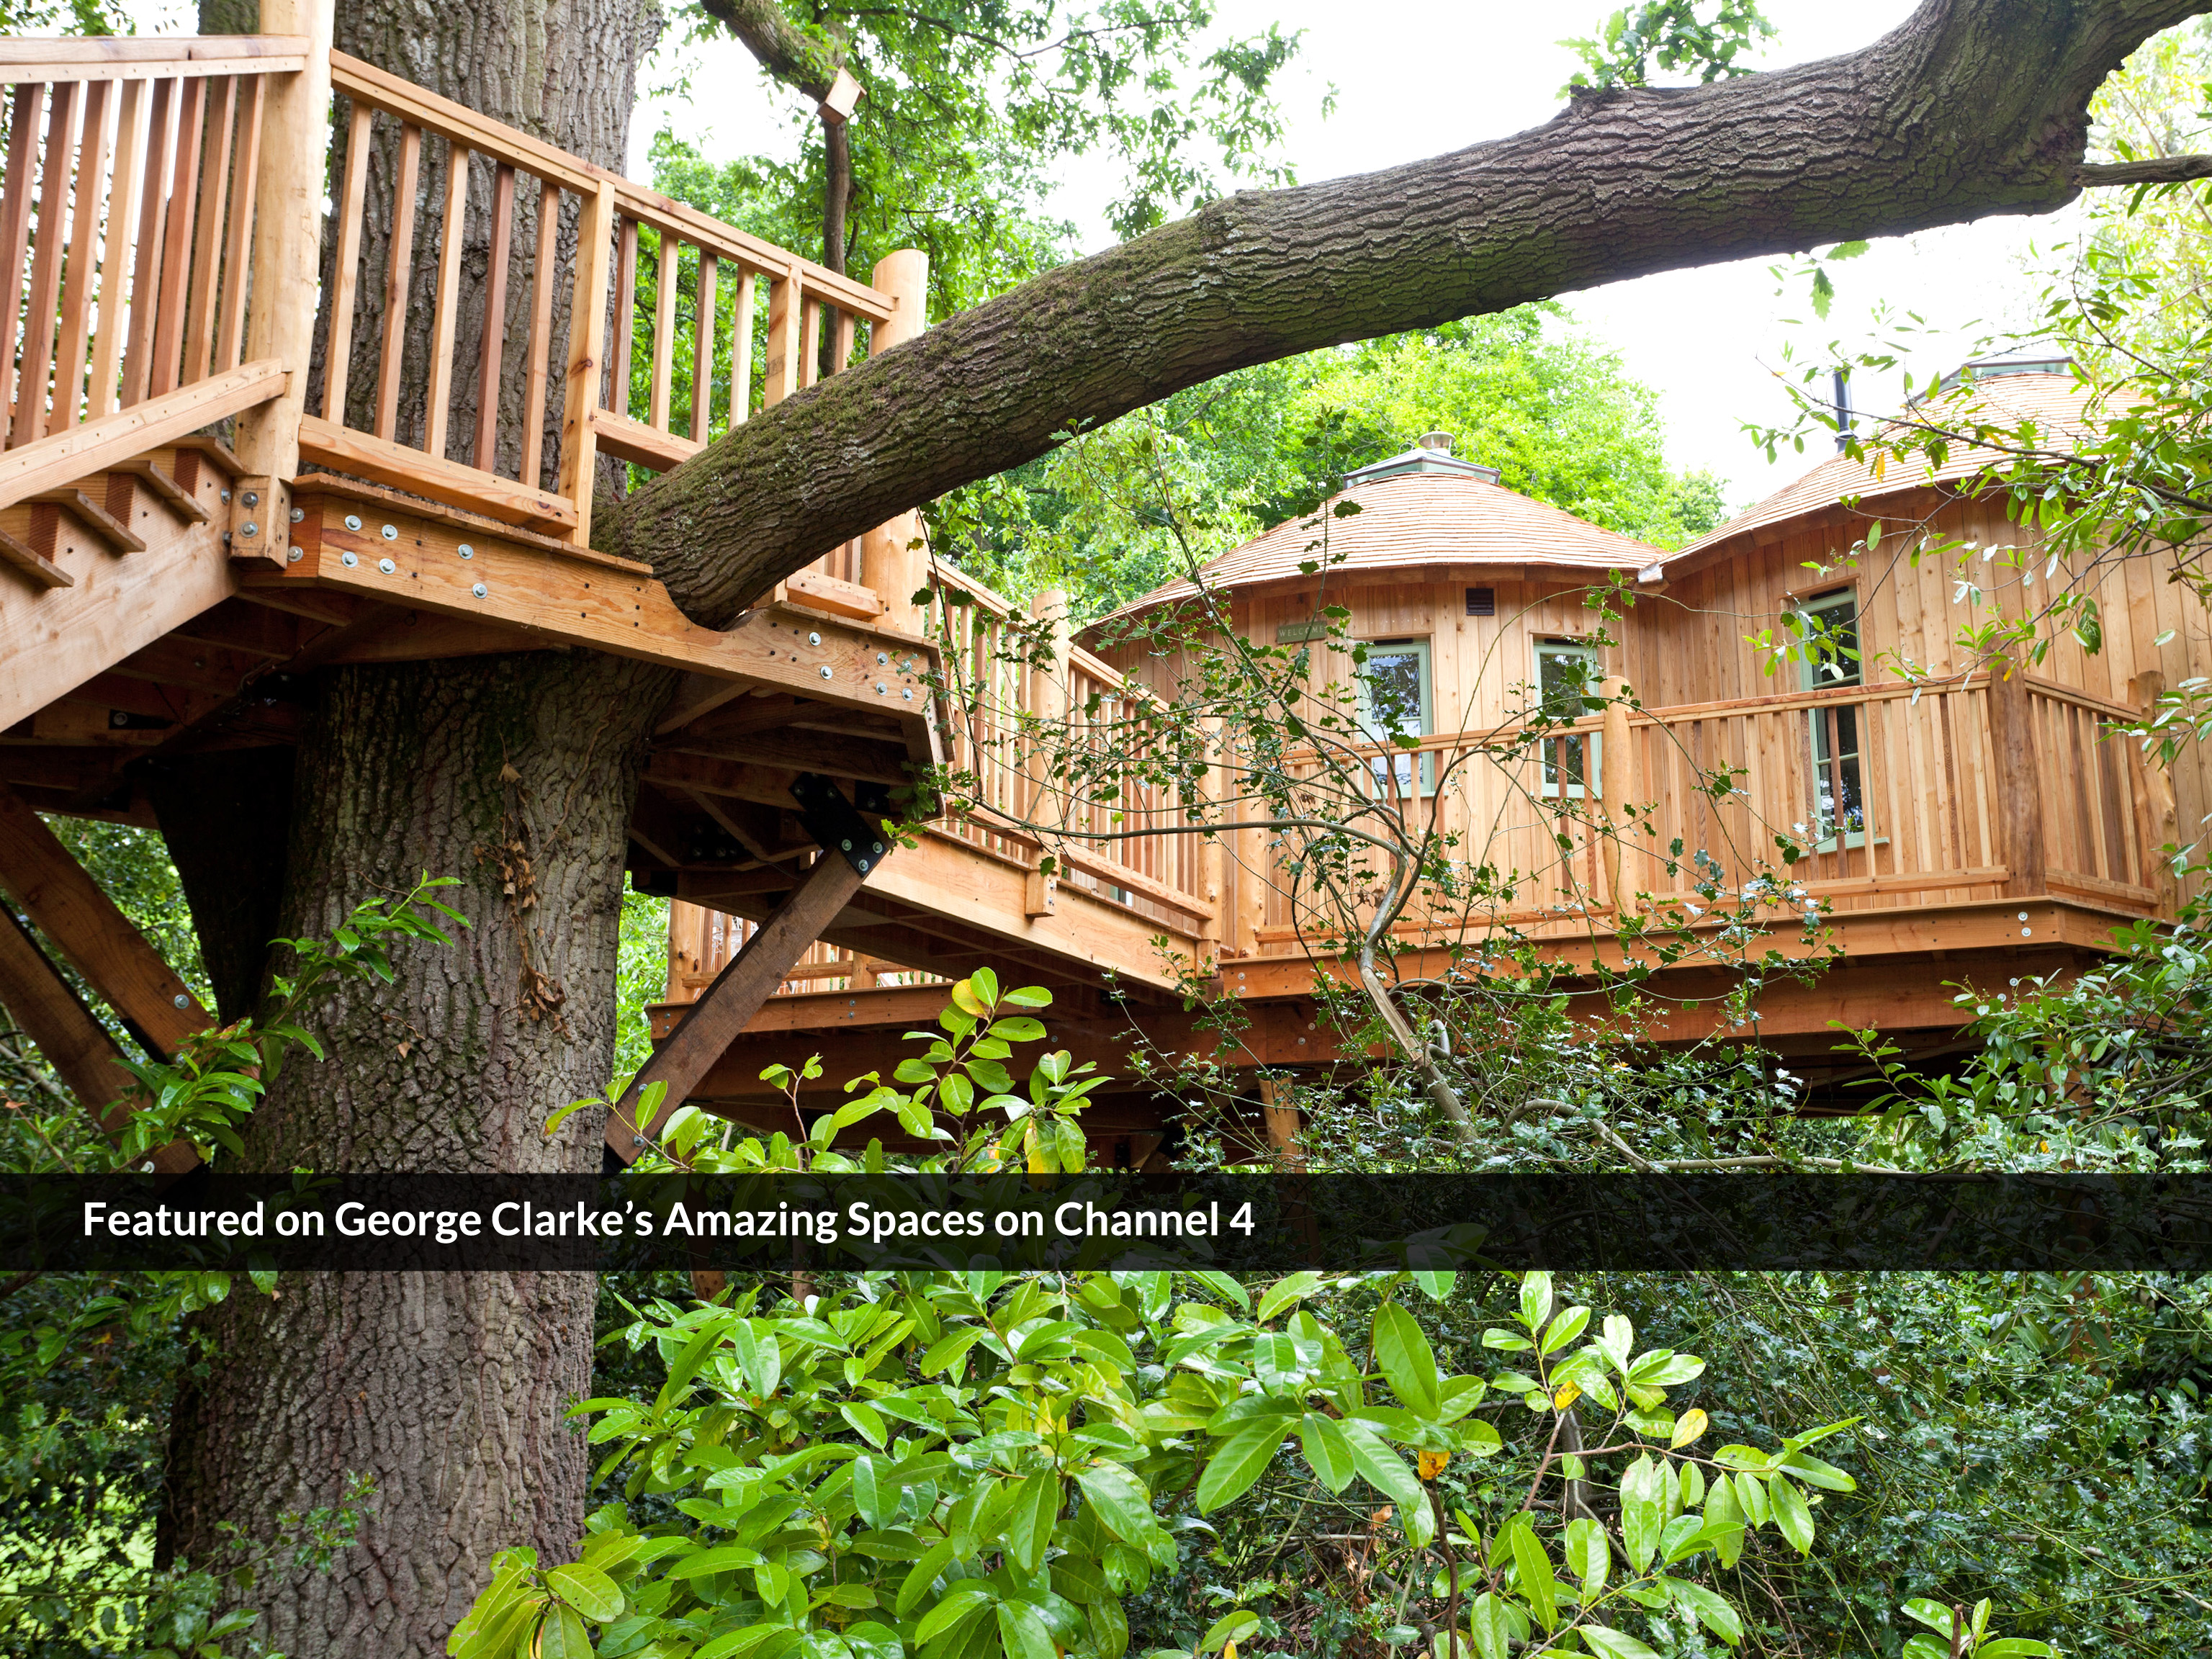 Treehouse the treehouse at harptree court | canopy & stars